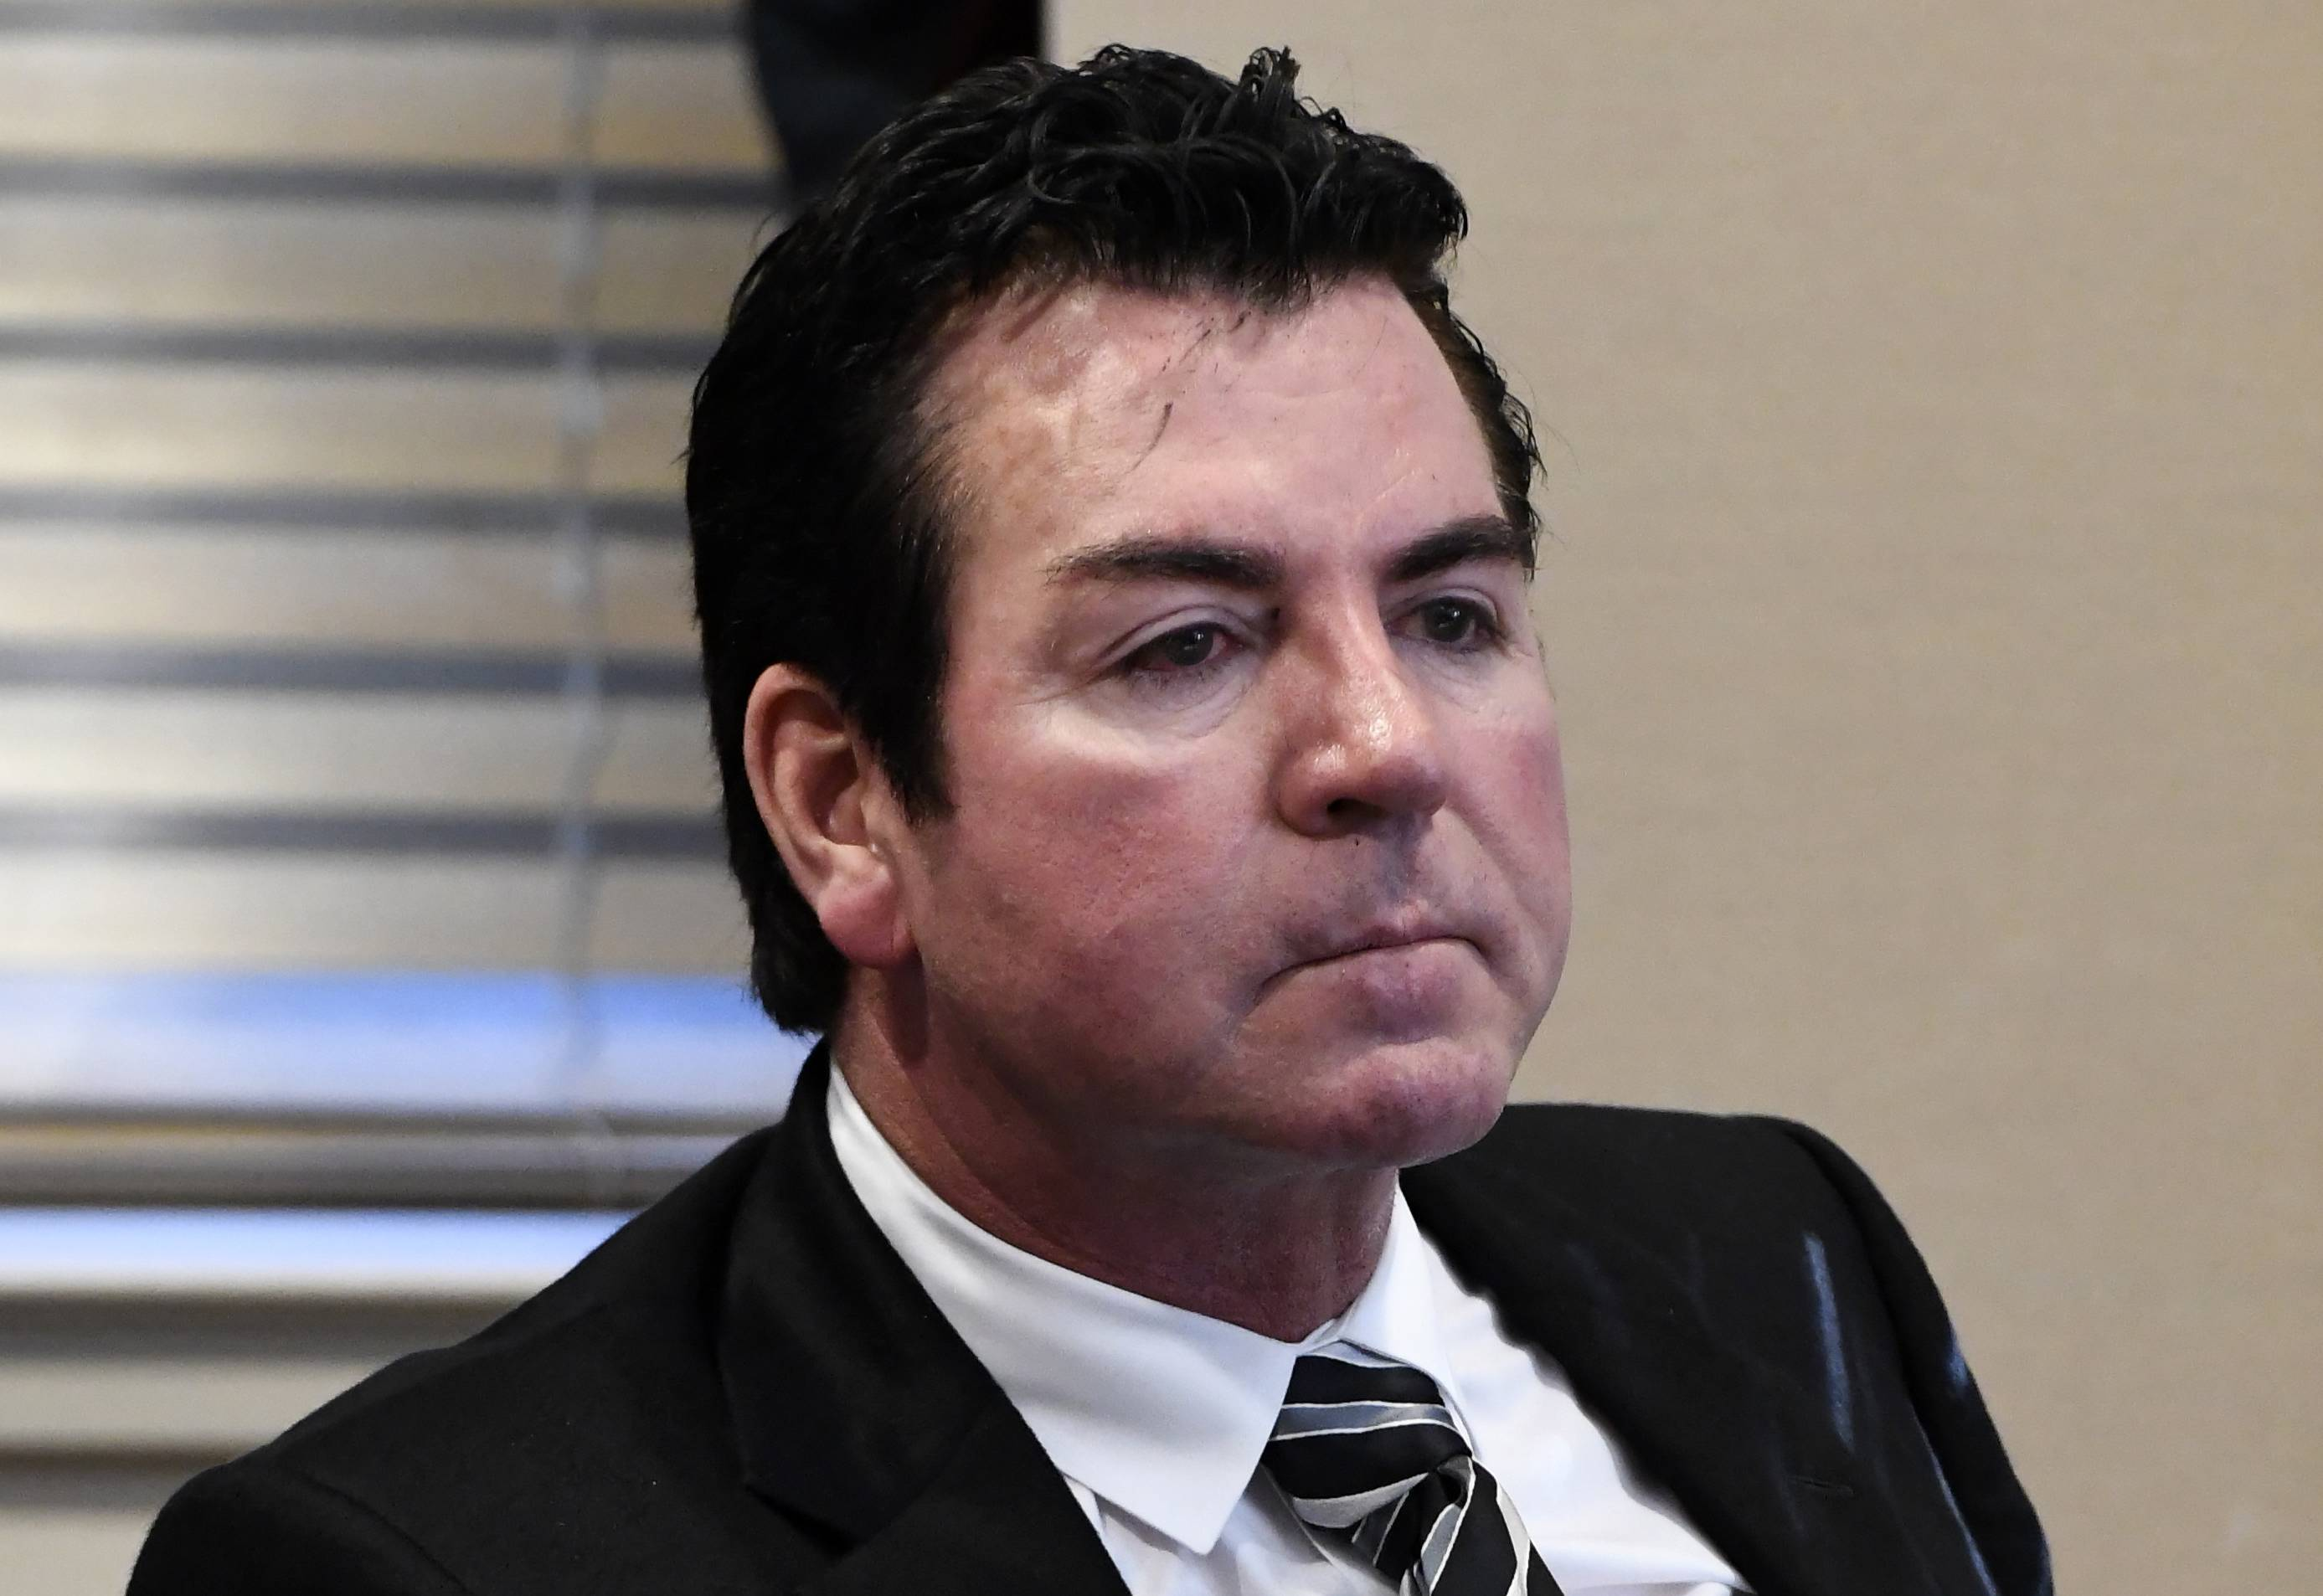 Papa John's founder John Schnatter has resigned as the company's chairman of the board, the company said Wednesday.